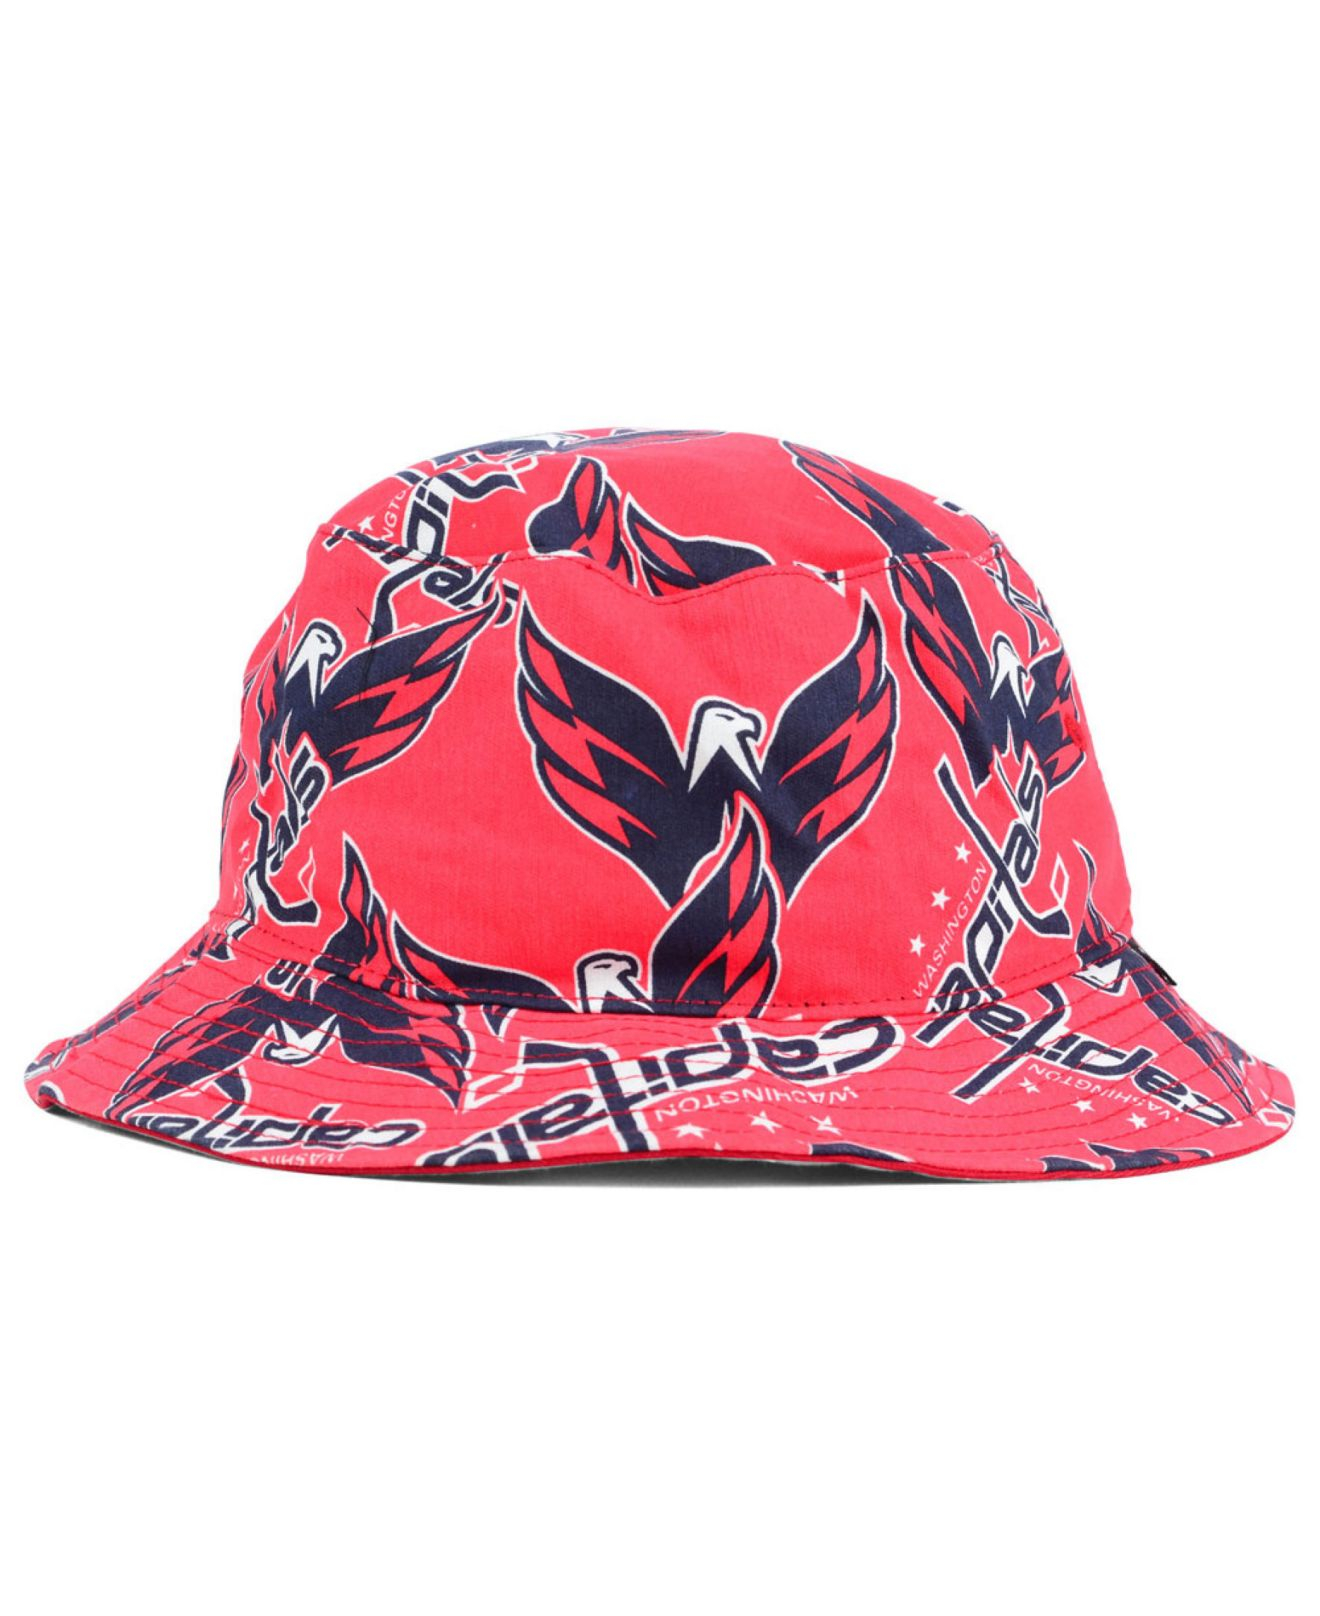 718892a6c ... new concept fd261 75bec Lyst - 47 Brand Washington Capitals Bucket Hat  in Pink ...